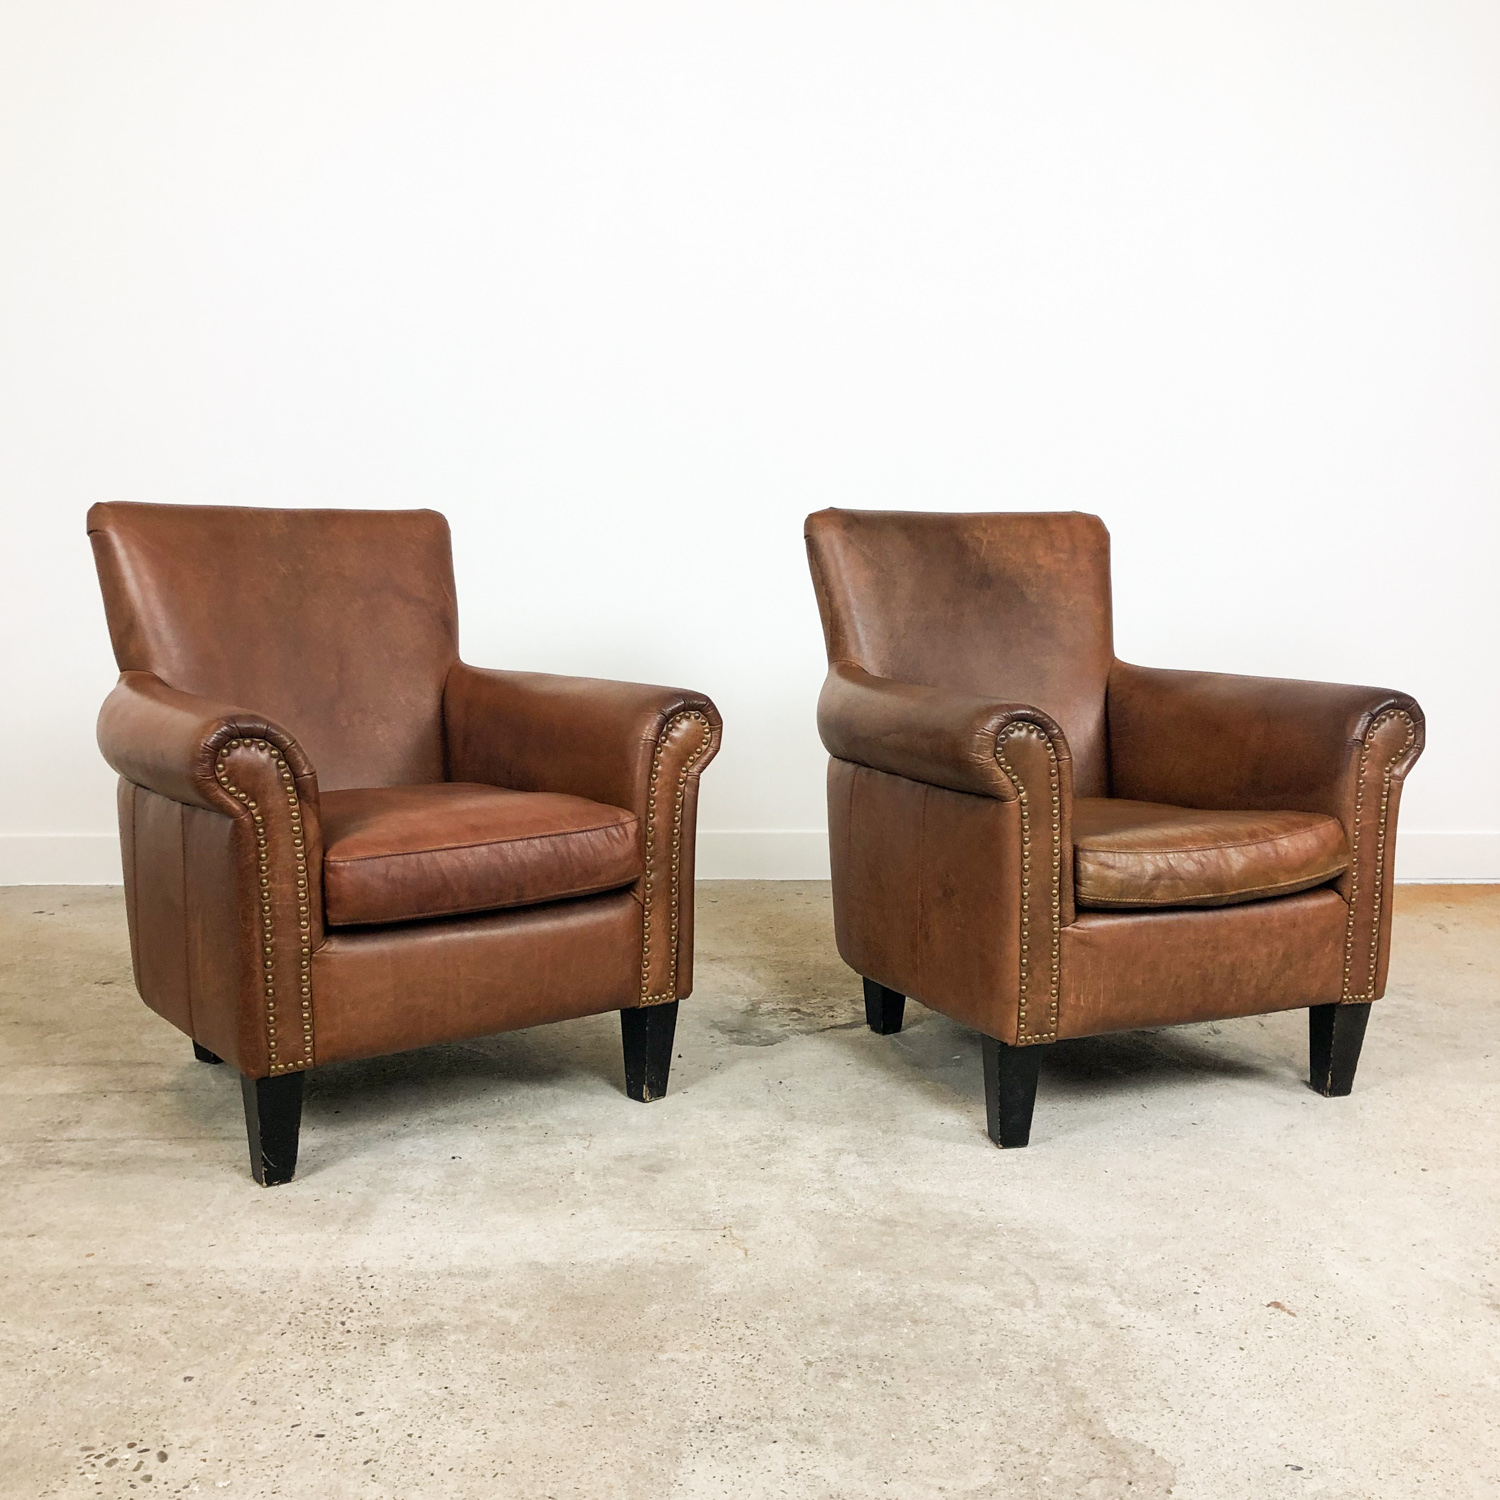 Set of two vintage leather armchairs